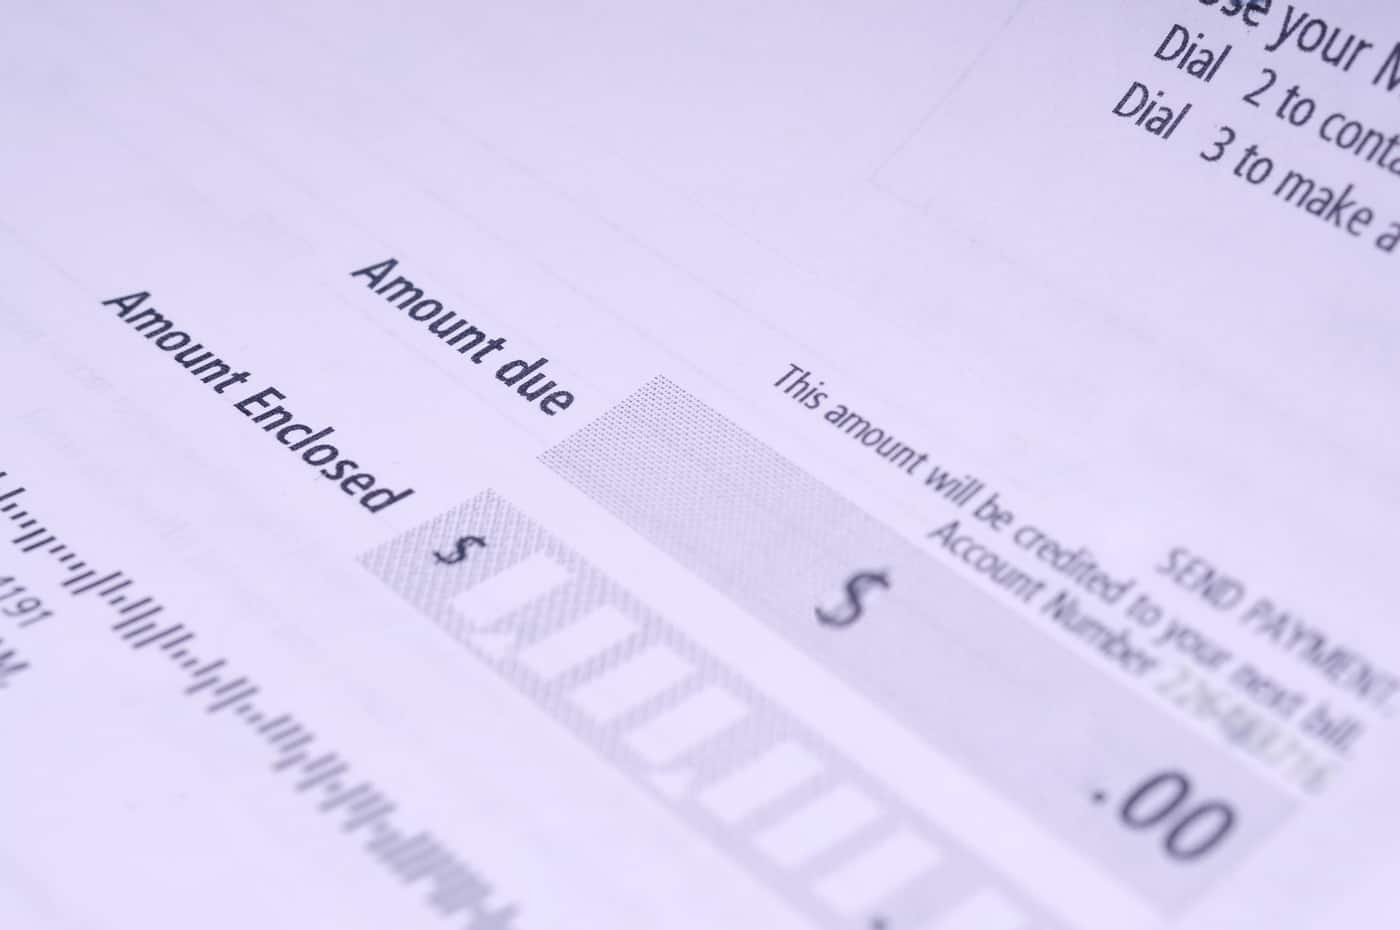 5 Ways to Make Your Billing Statement a Marketing Tool